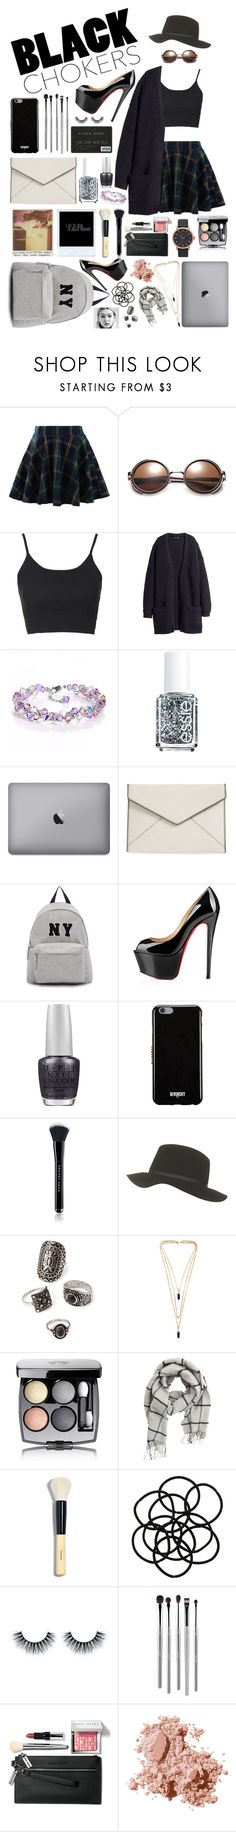 """Black chokers! #106"" by worldofflowers ❤ liked on Polyvore featuring Chicwish, Topshop, H&M, Essie, Rebecca Minkoff, Joshua's, Christian Louboutin, OPI, Givenchy and Marc Jacobs"